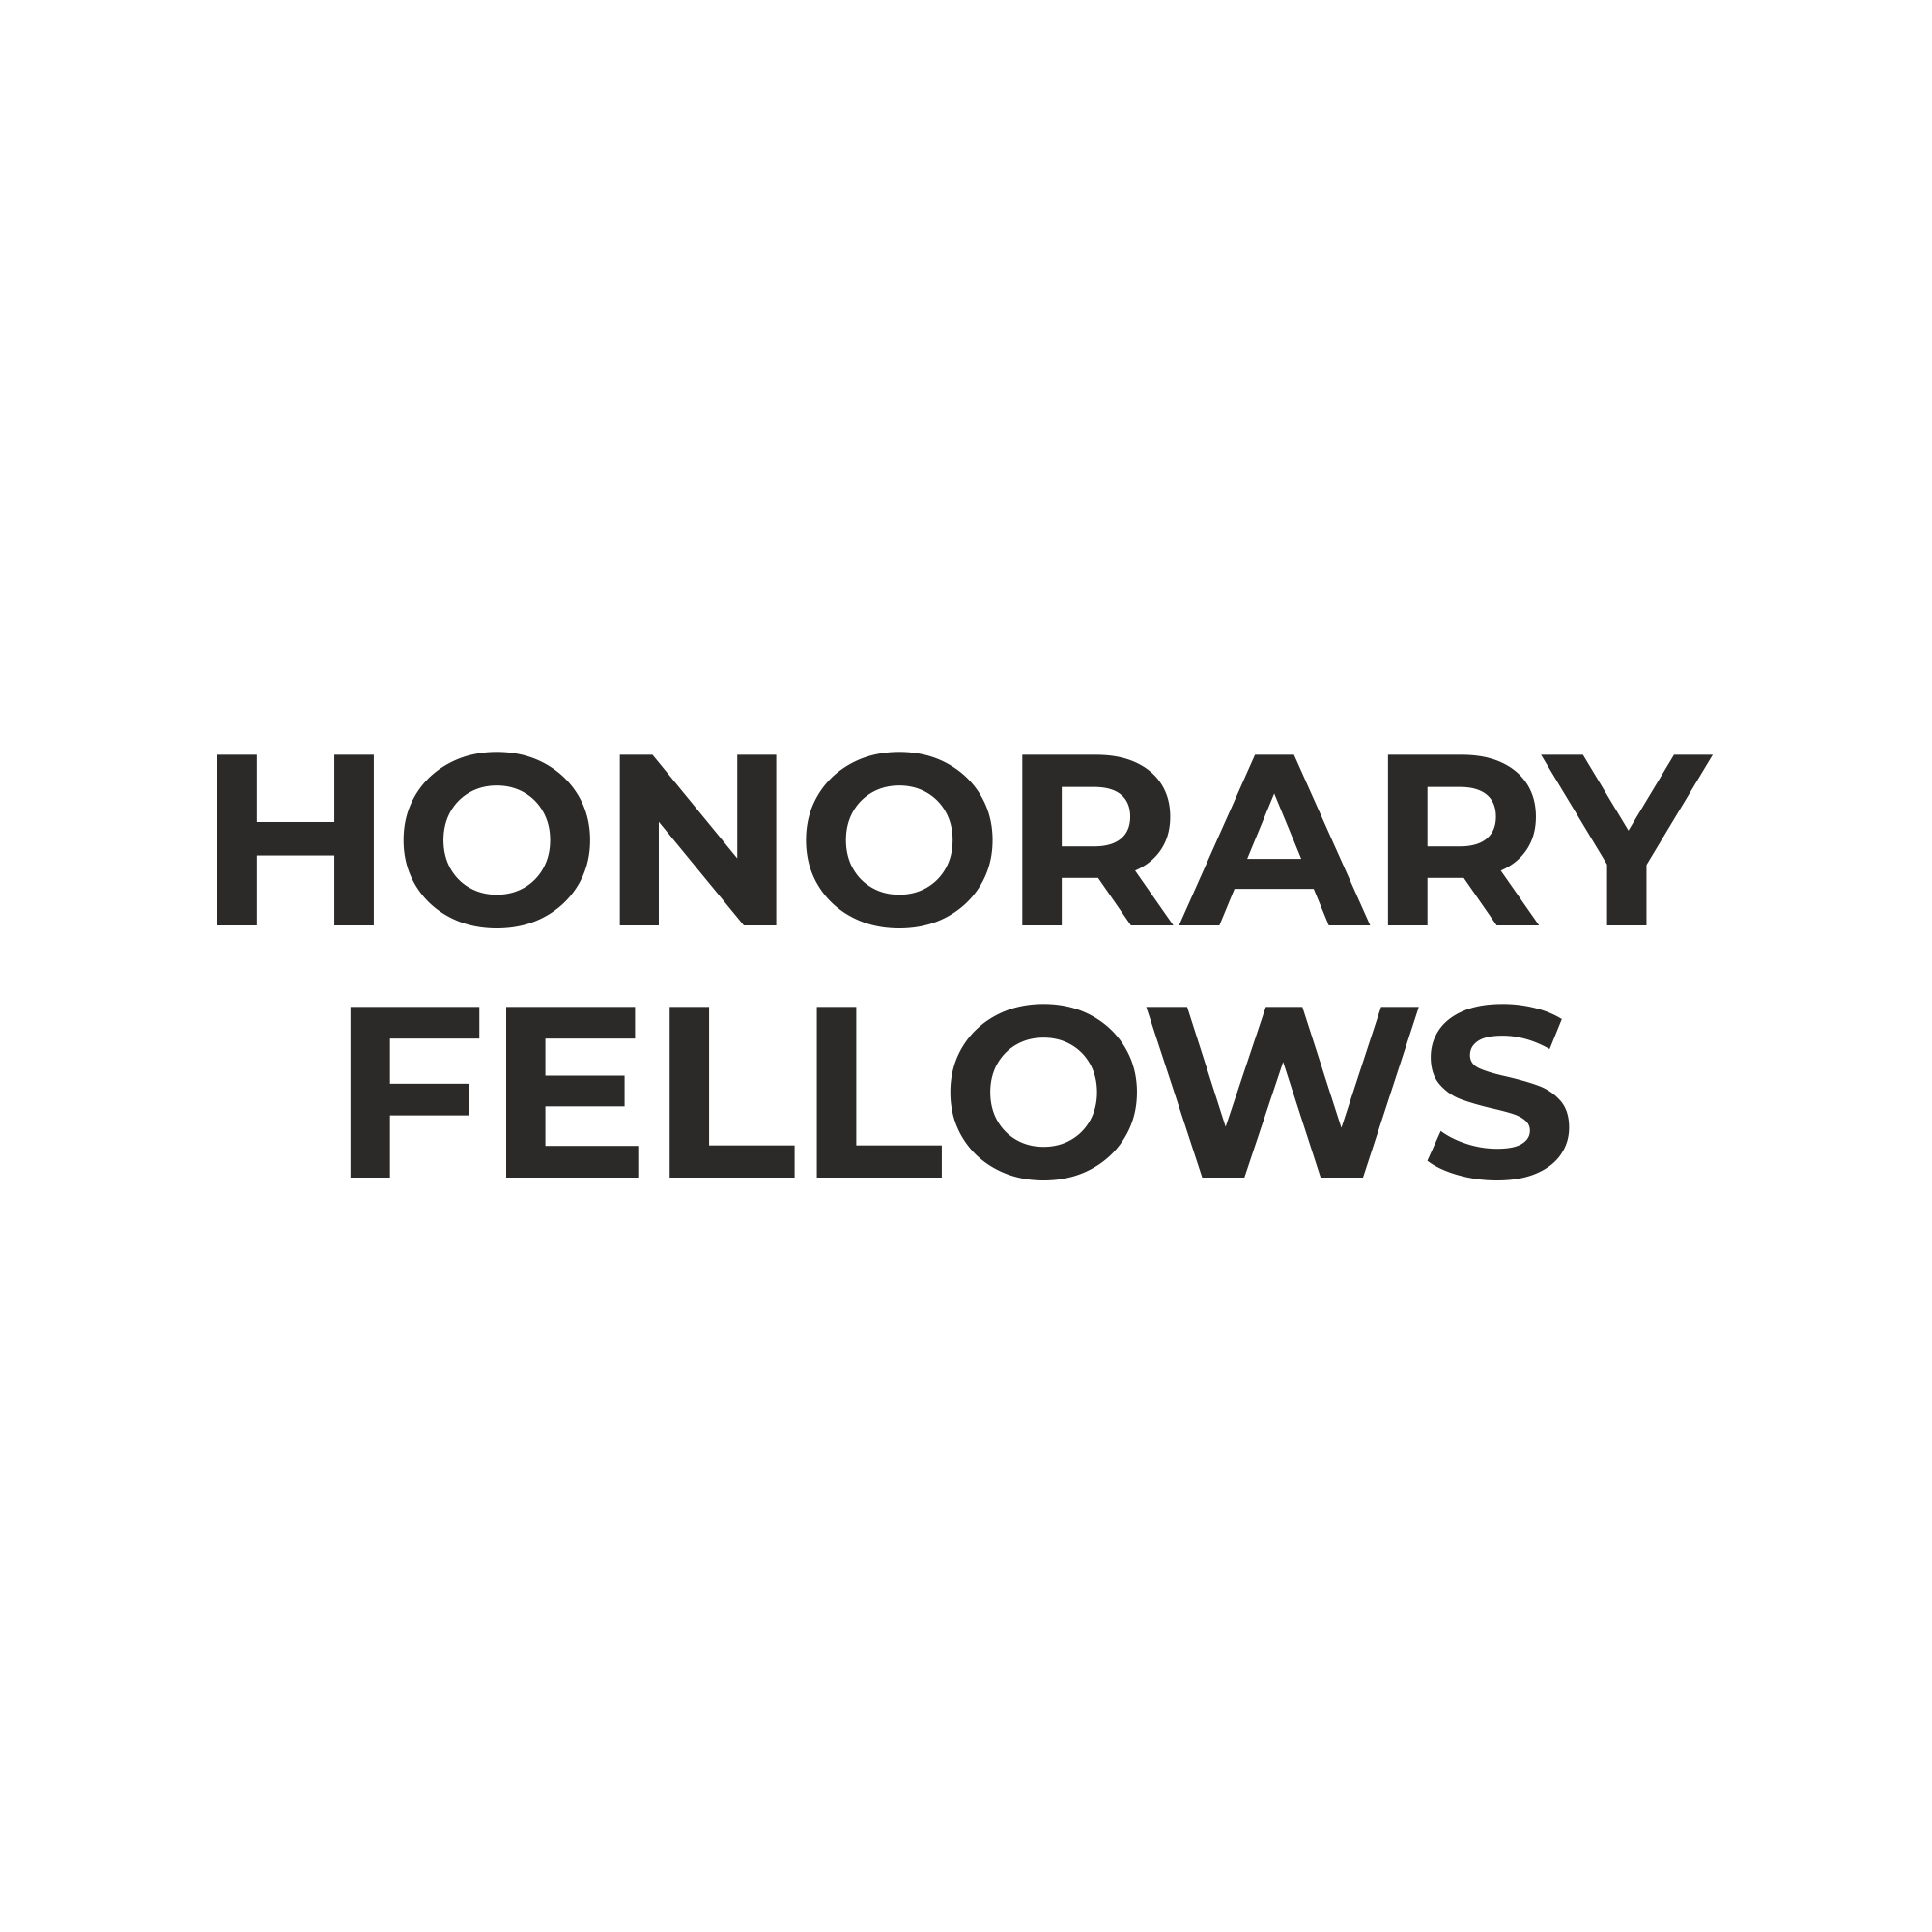 HONRARY FELLOWS